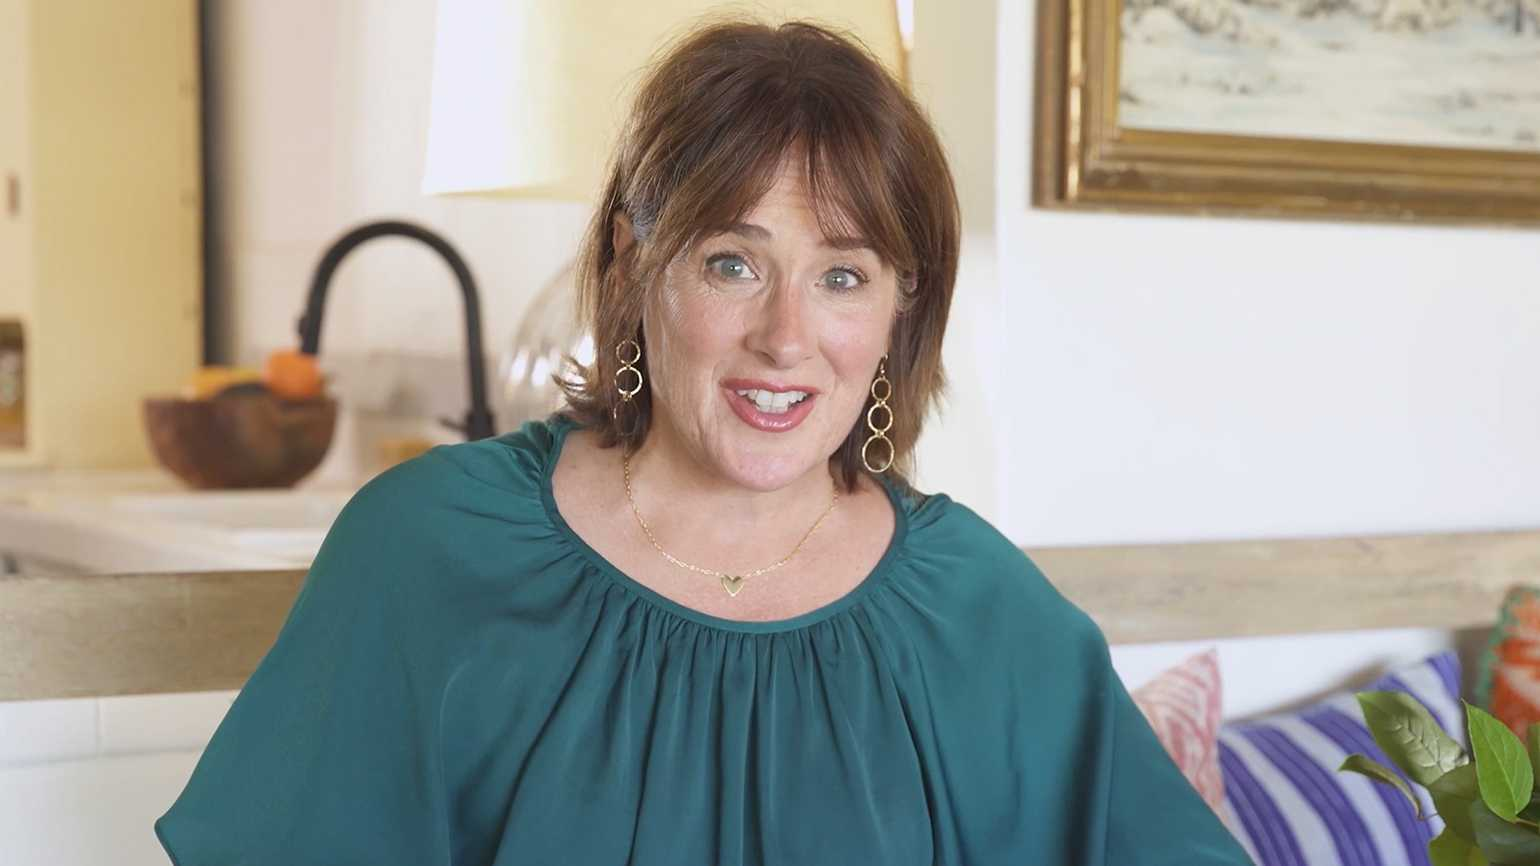 Author and lifestyle expert Katie Brown